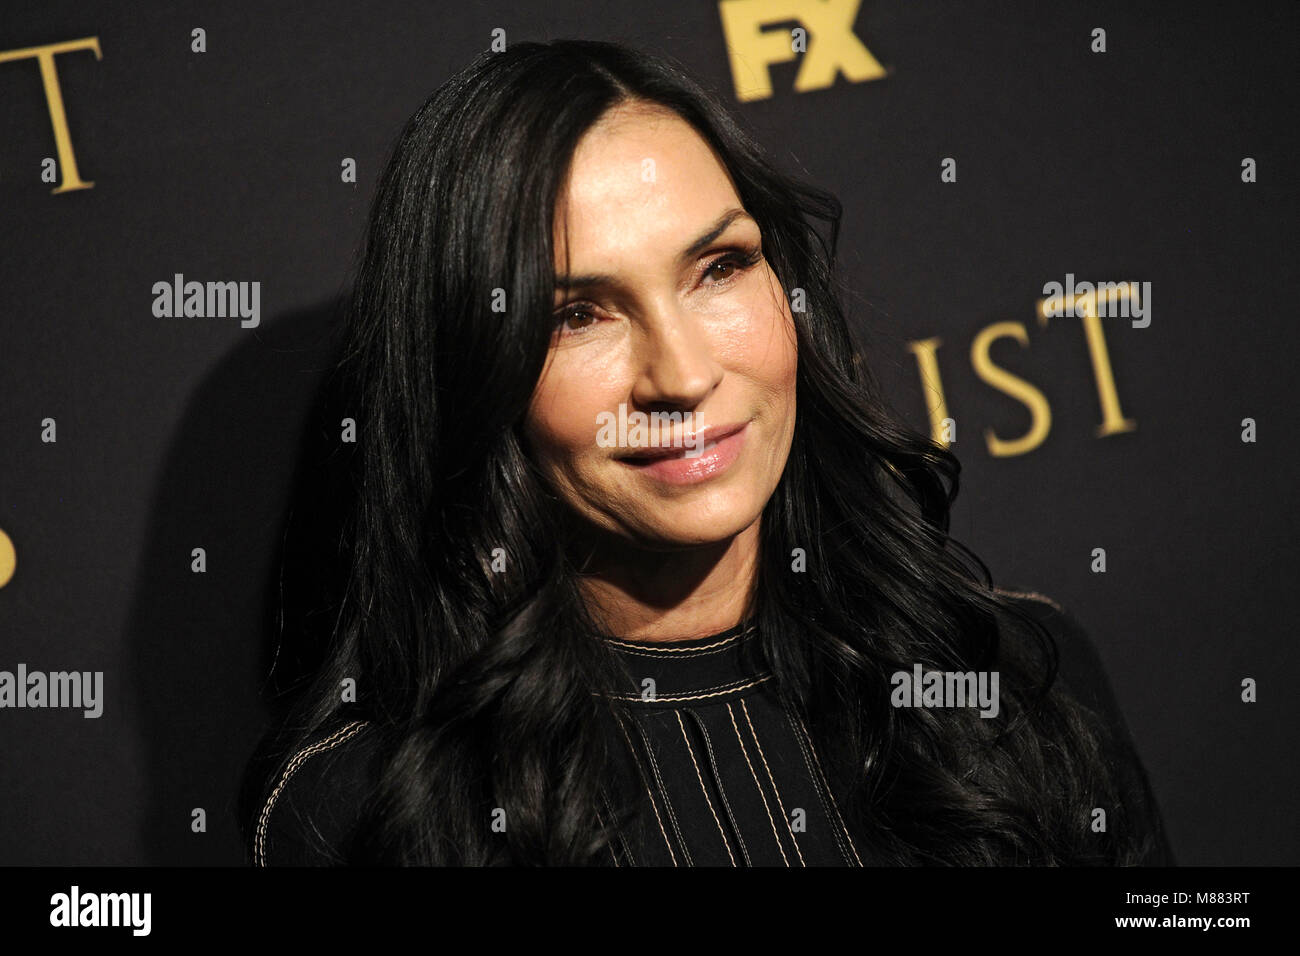 Famke Janssen attending the FX Networks' 'Trust' New York Screening at Florence Gould Hall on March 14, 2018 in Stock Photo